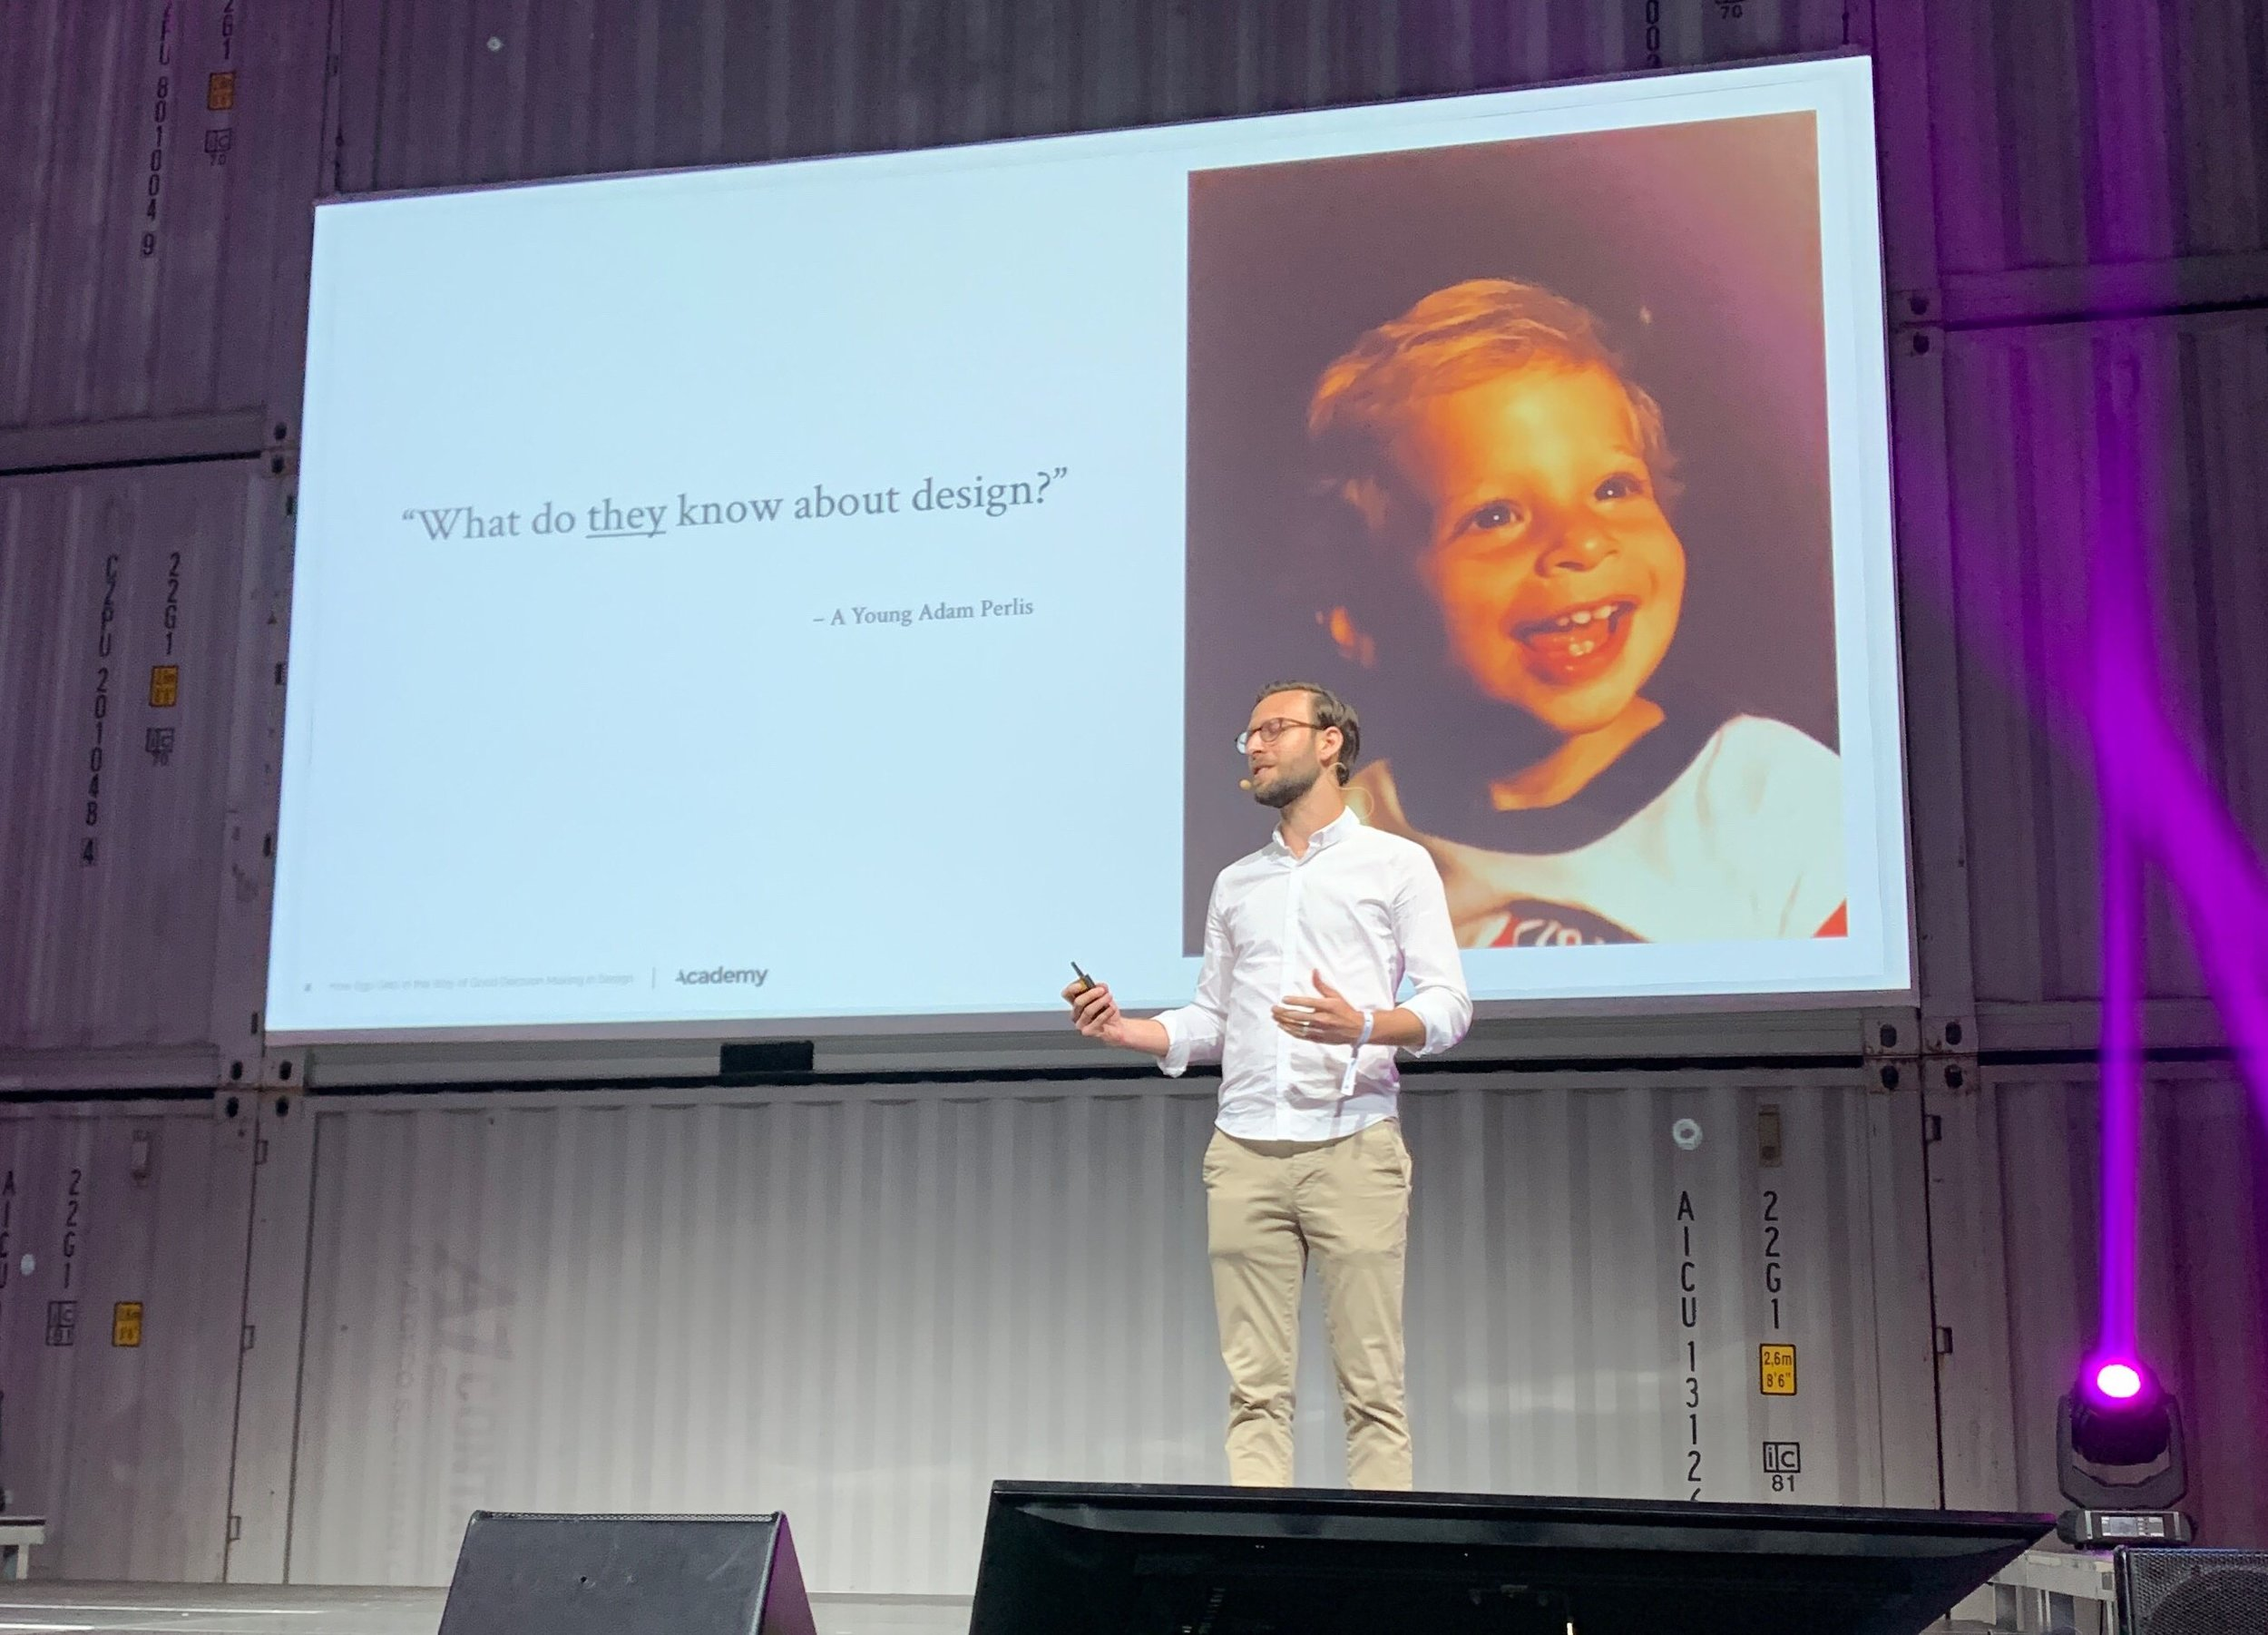 """As a younger designer I had this chip on myshoulder thinking that I was the designer, so I must be right."" - Adam Perlis, Founder and CEO of Academy UX"